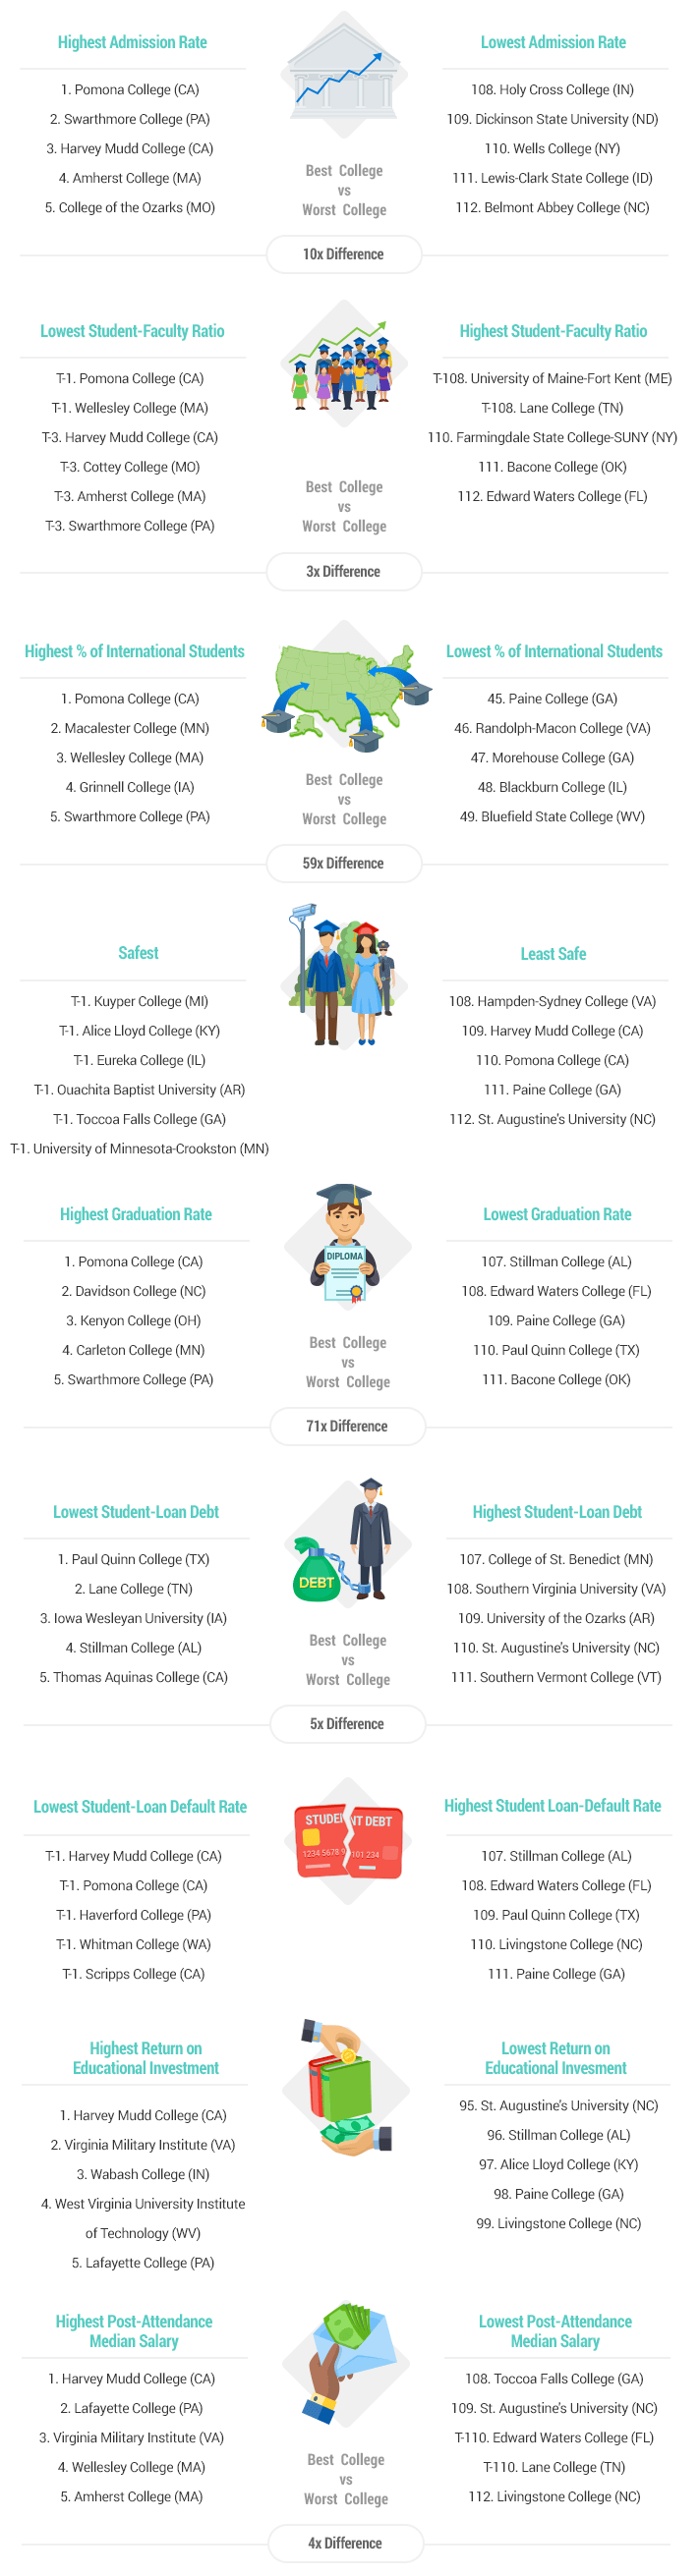 Artwork-2017-Best-Colleges-in-America-v2